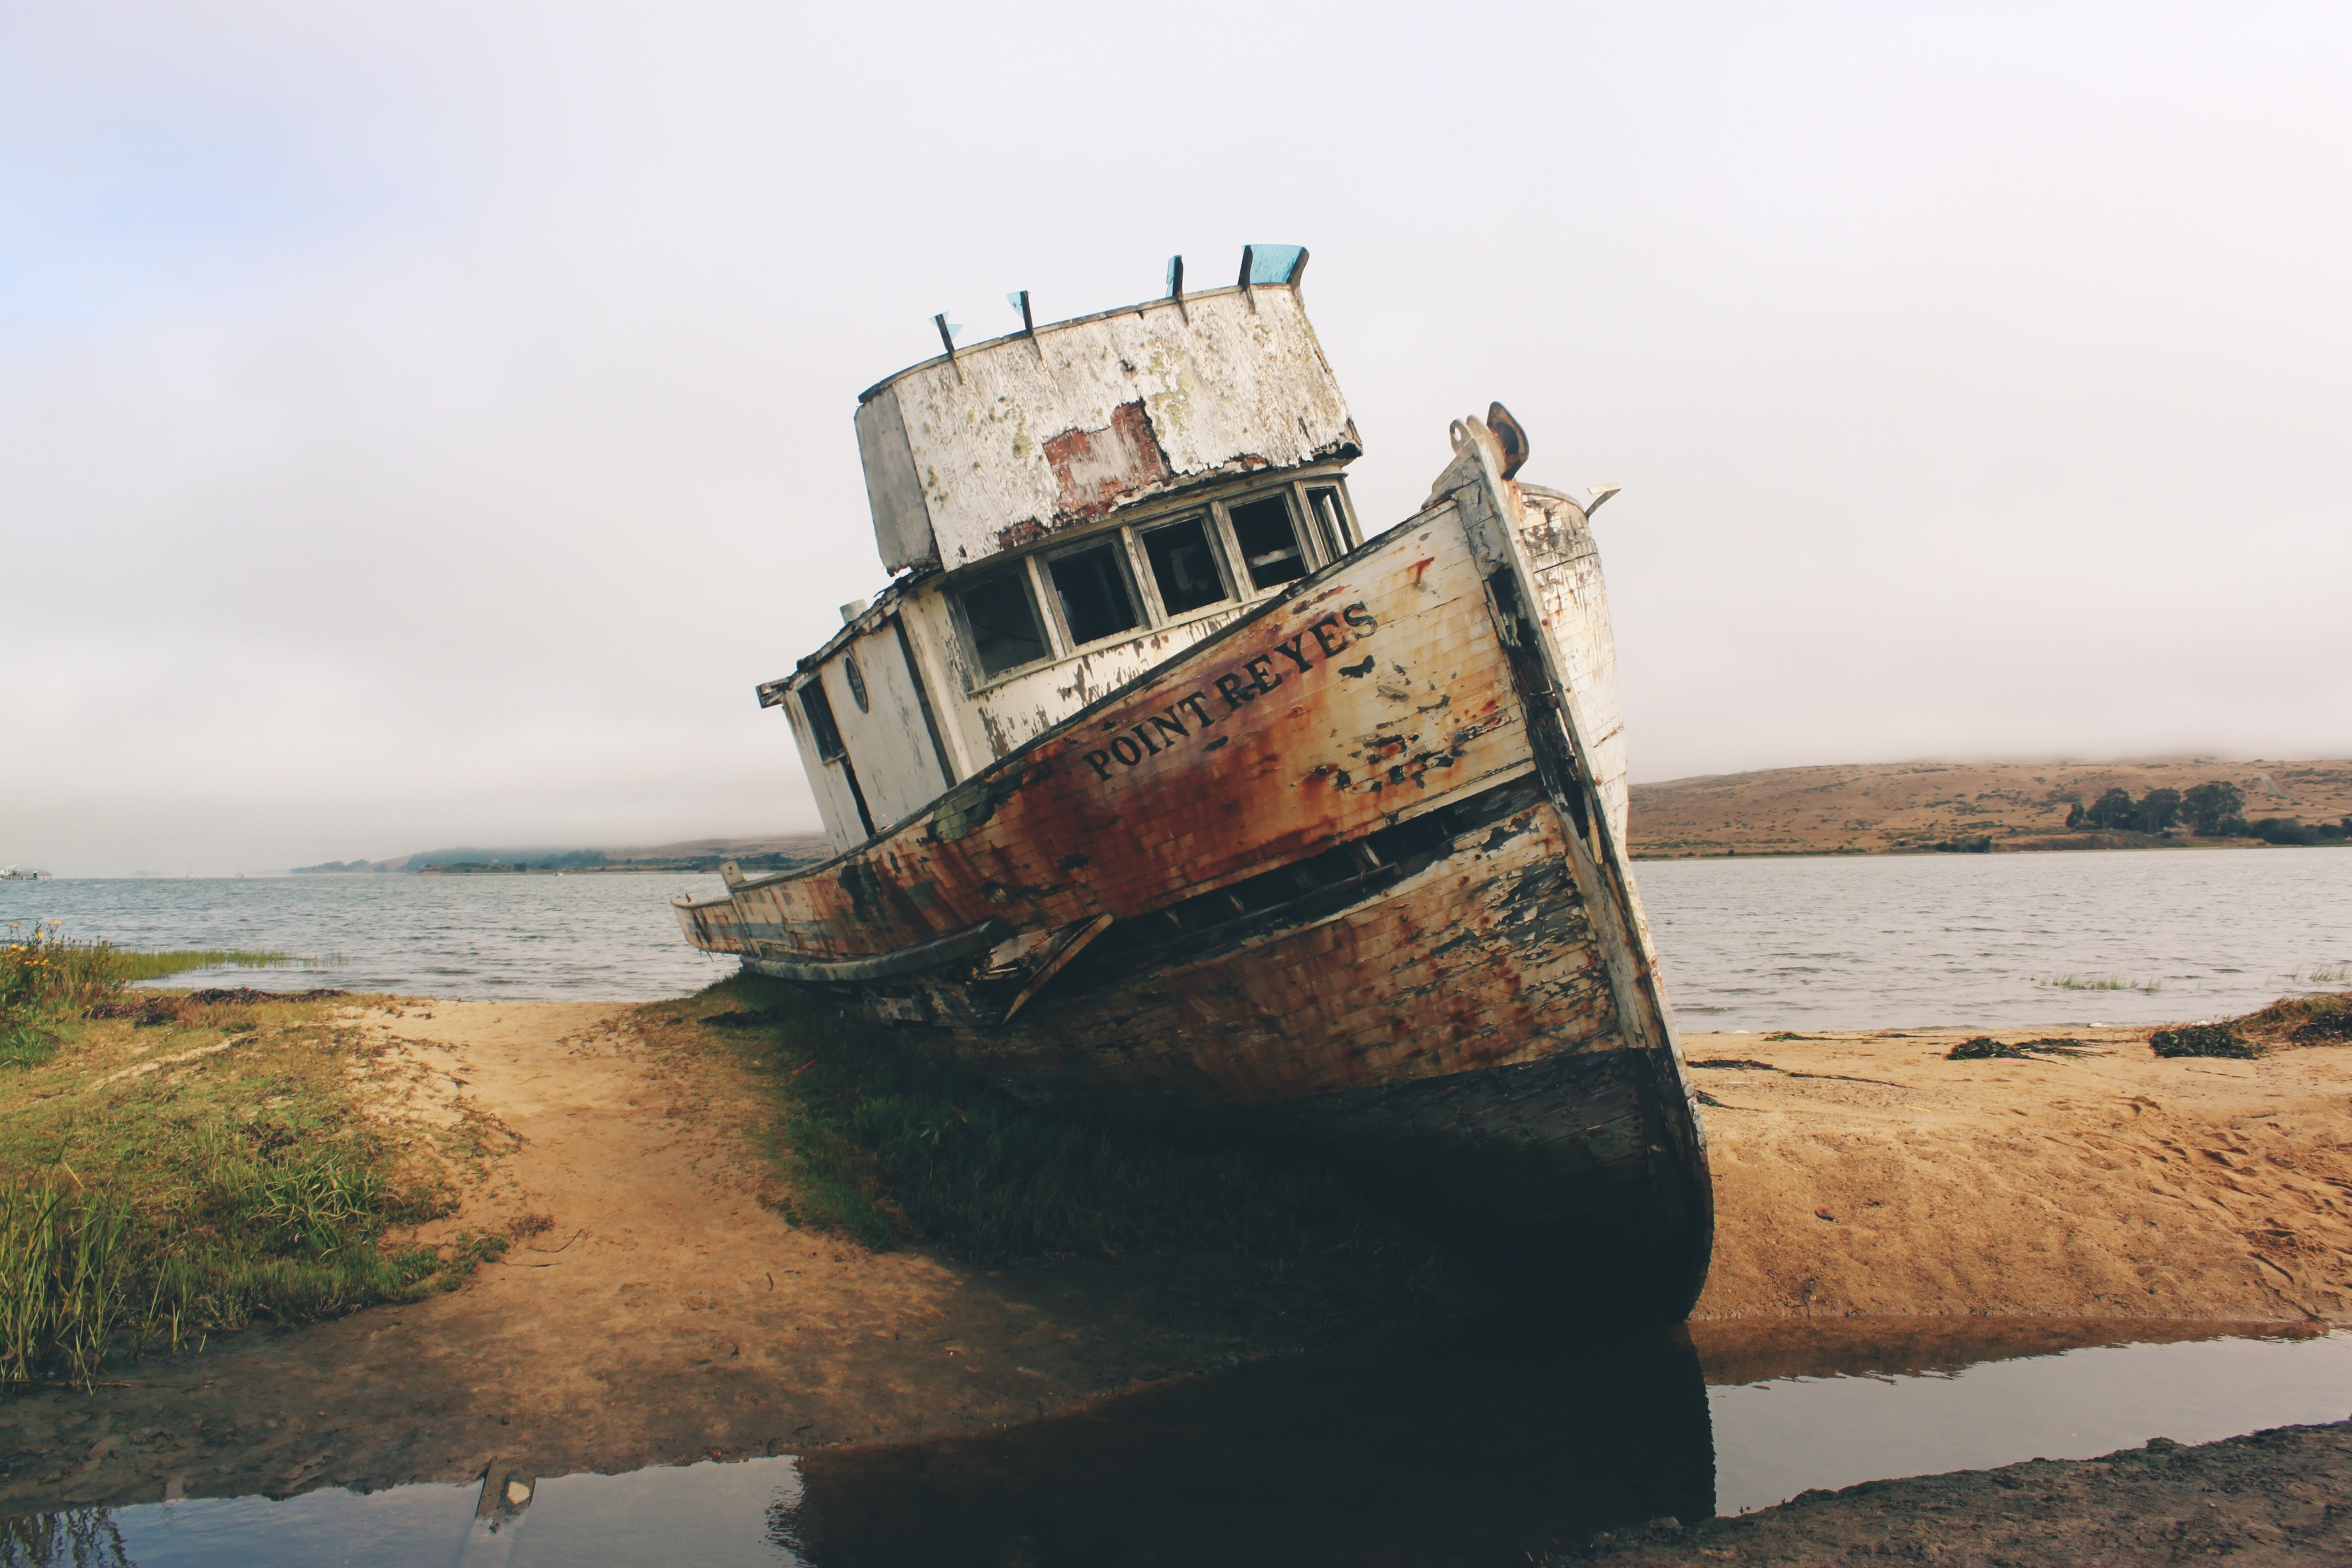 An abandoned old wrecked ship on the shore of the ocean at point Reyes station.